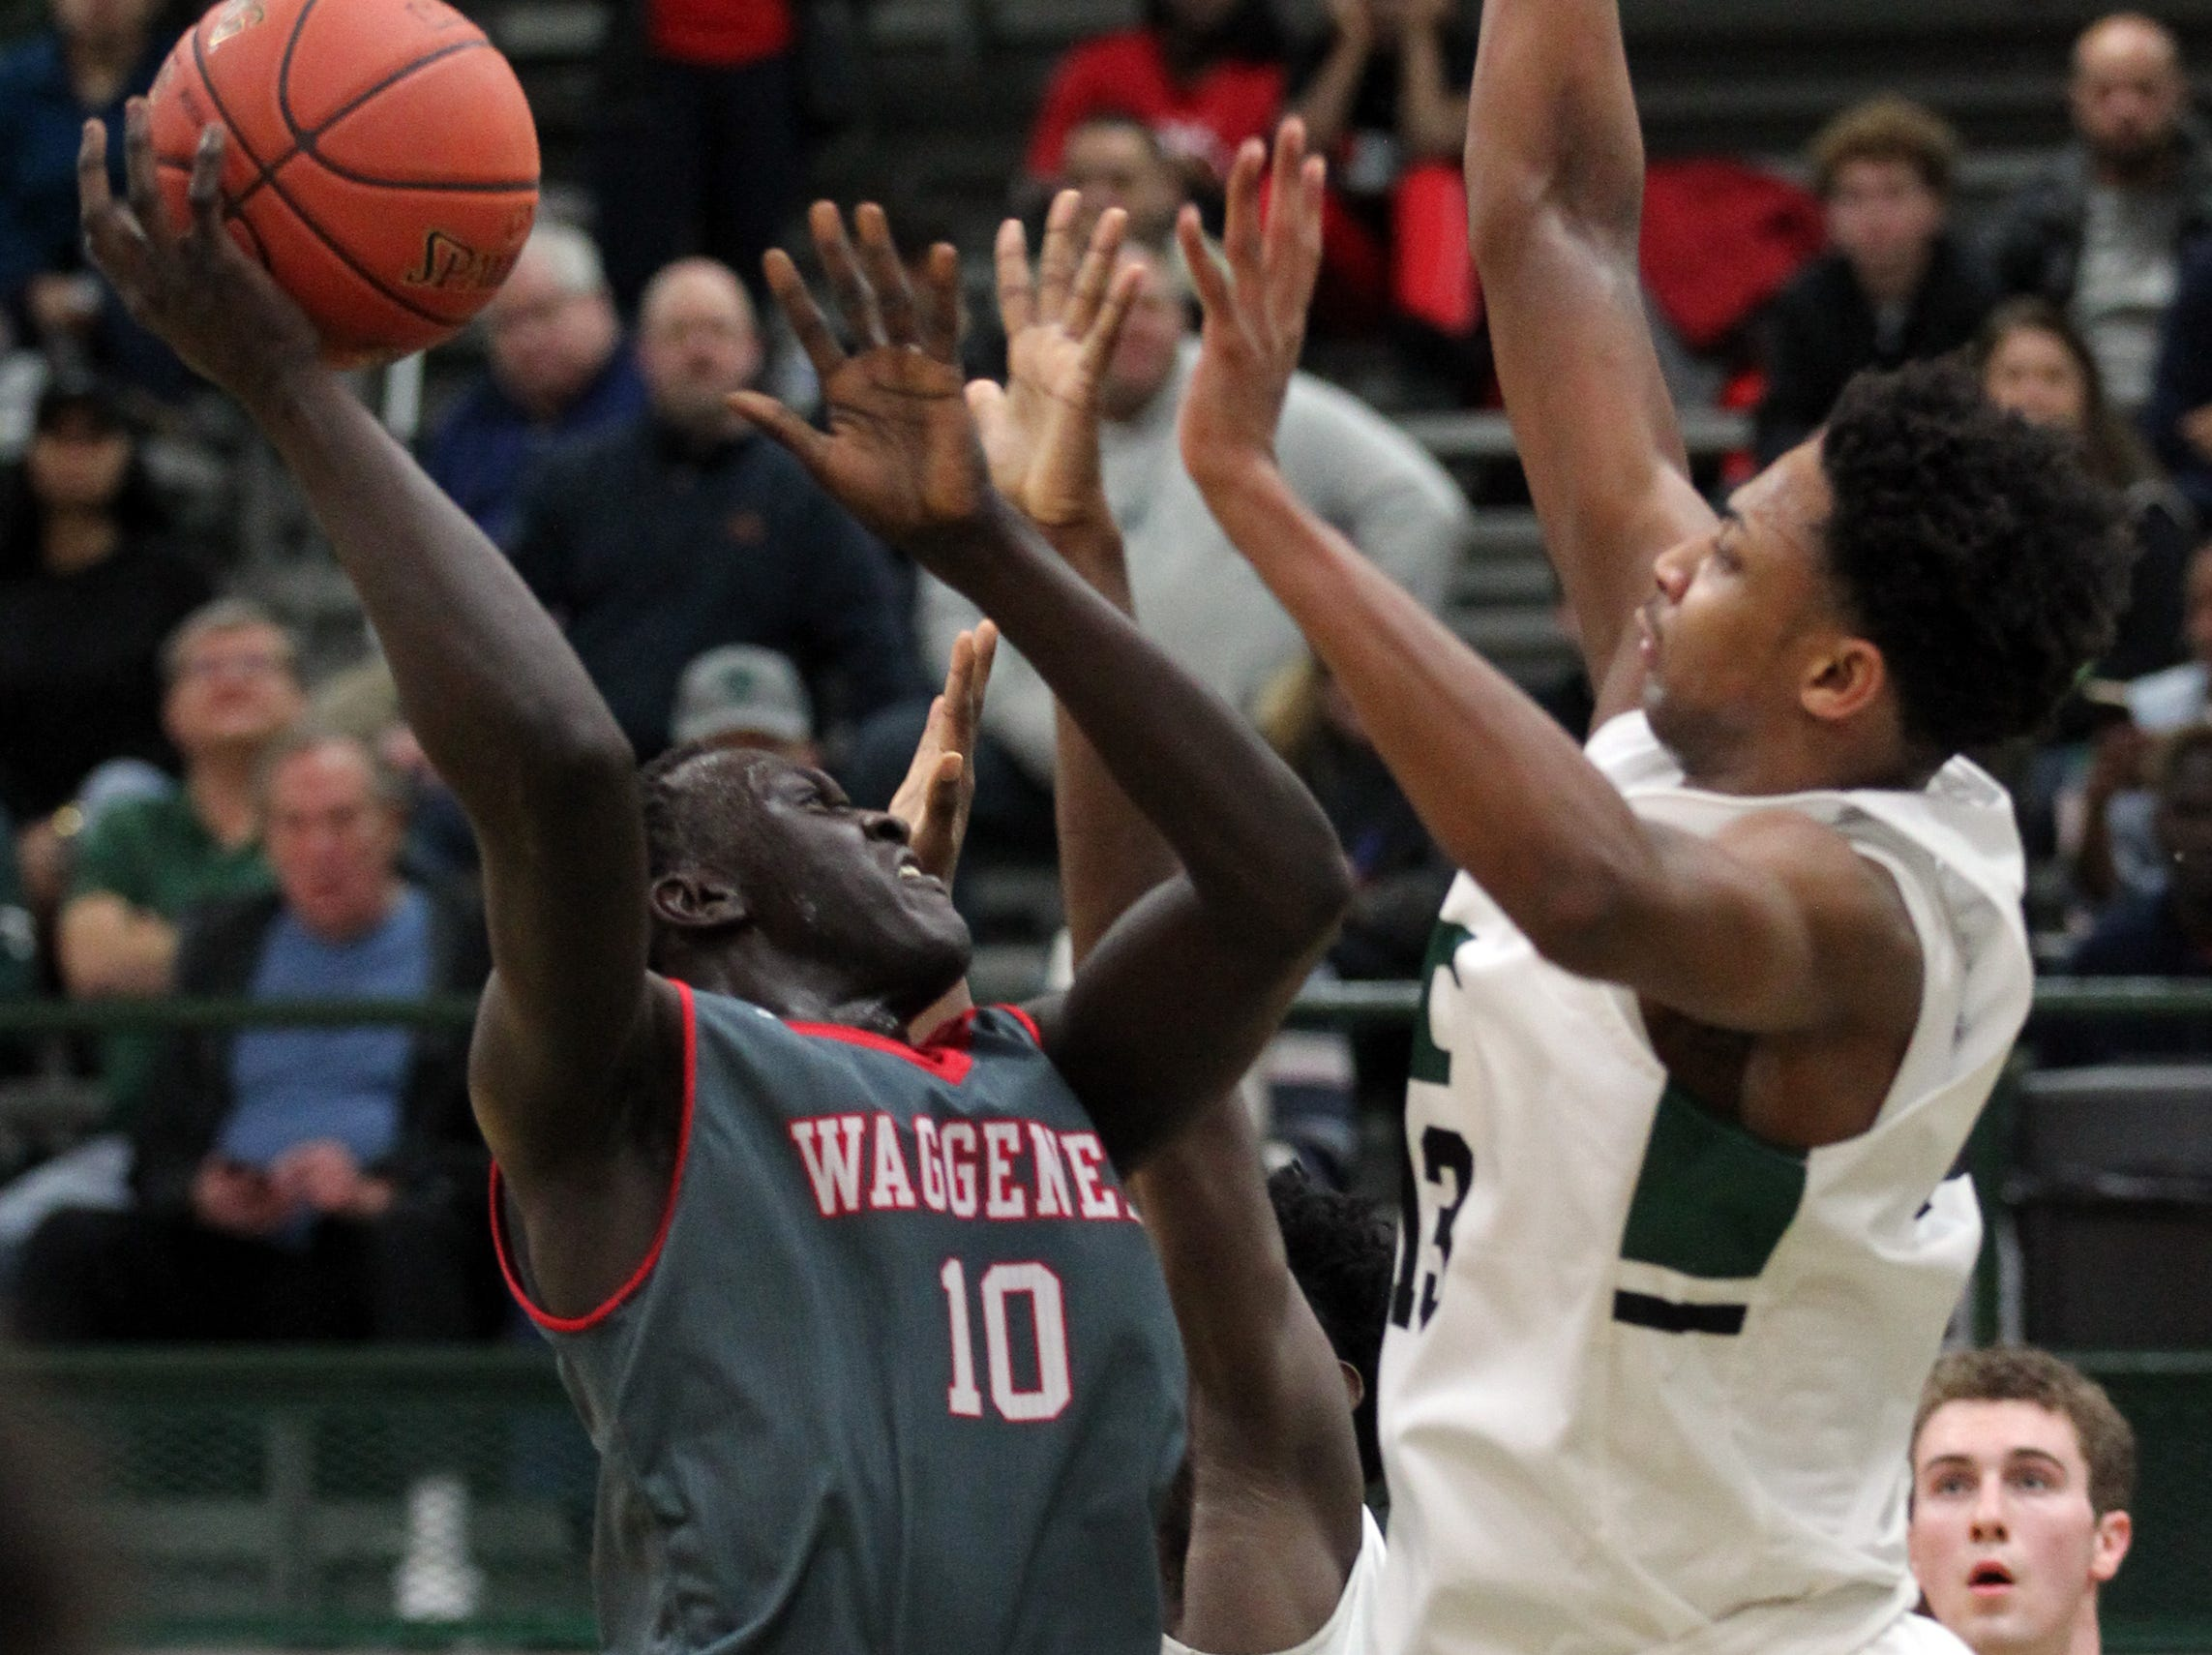 Waggener High School's Jaago Kalakon (10) fights to get his shot off under pressure from Trinity High School's David Johnson (13) during the second half of play at Trinity High School on Jan. 11,  2019.